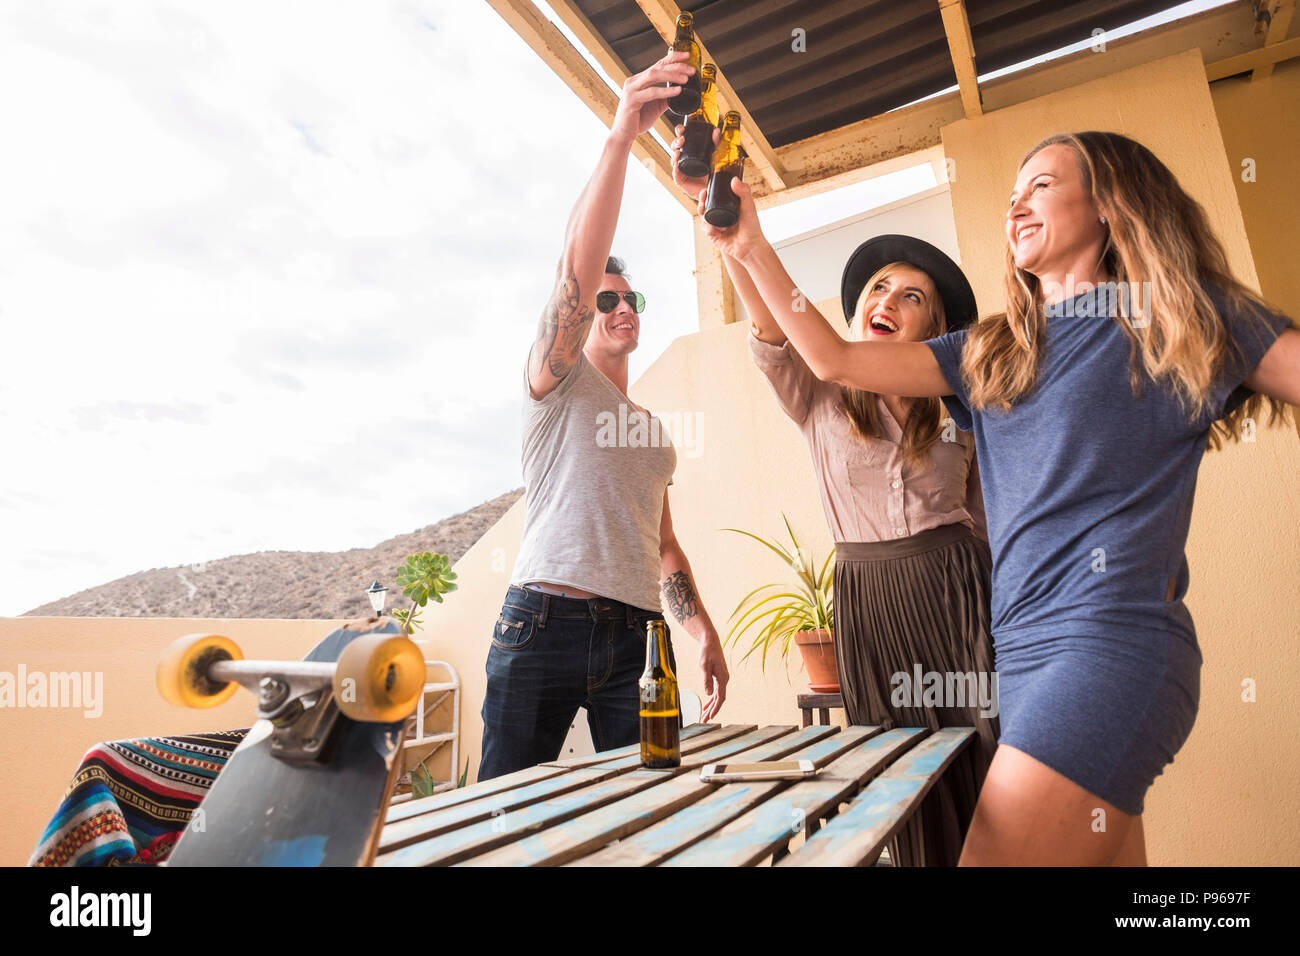 group of nice beautiful young people celebrate together with happiness on the terrace rooftop. drinking beers and having fun in a summer party style c Stock Photo